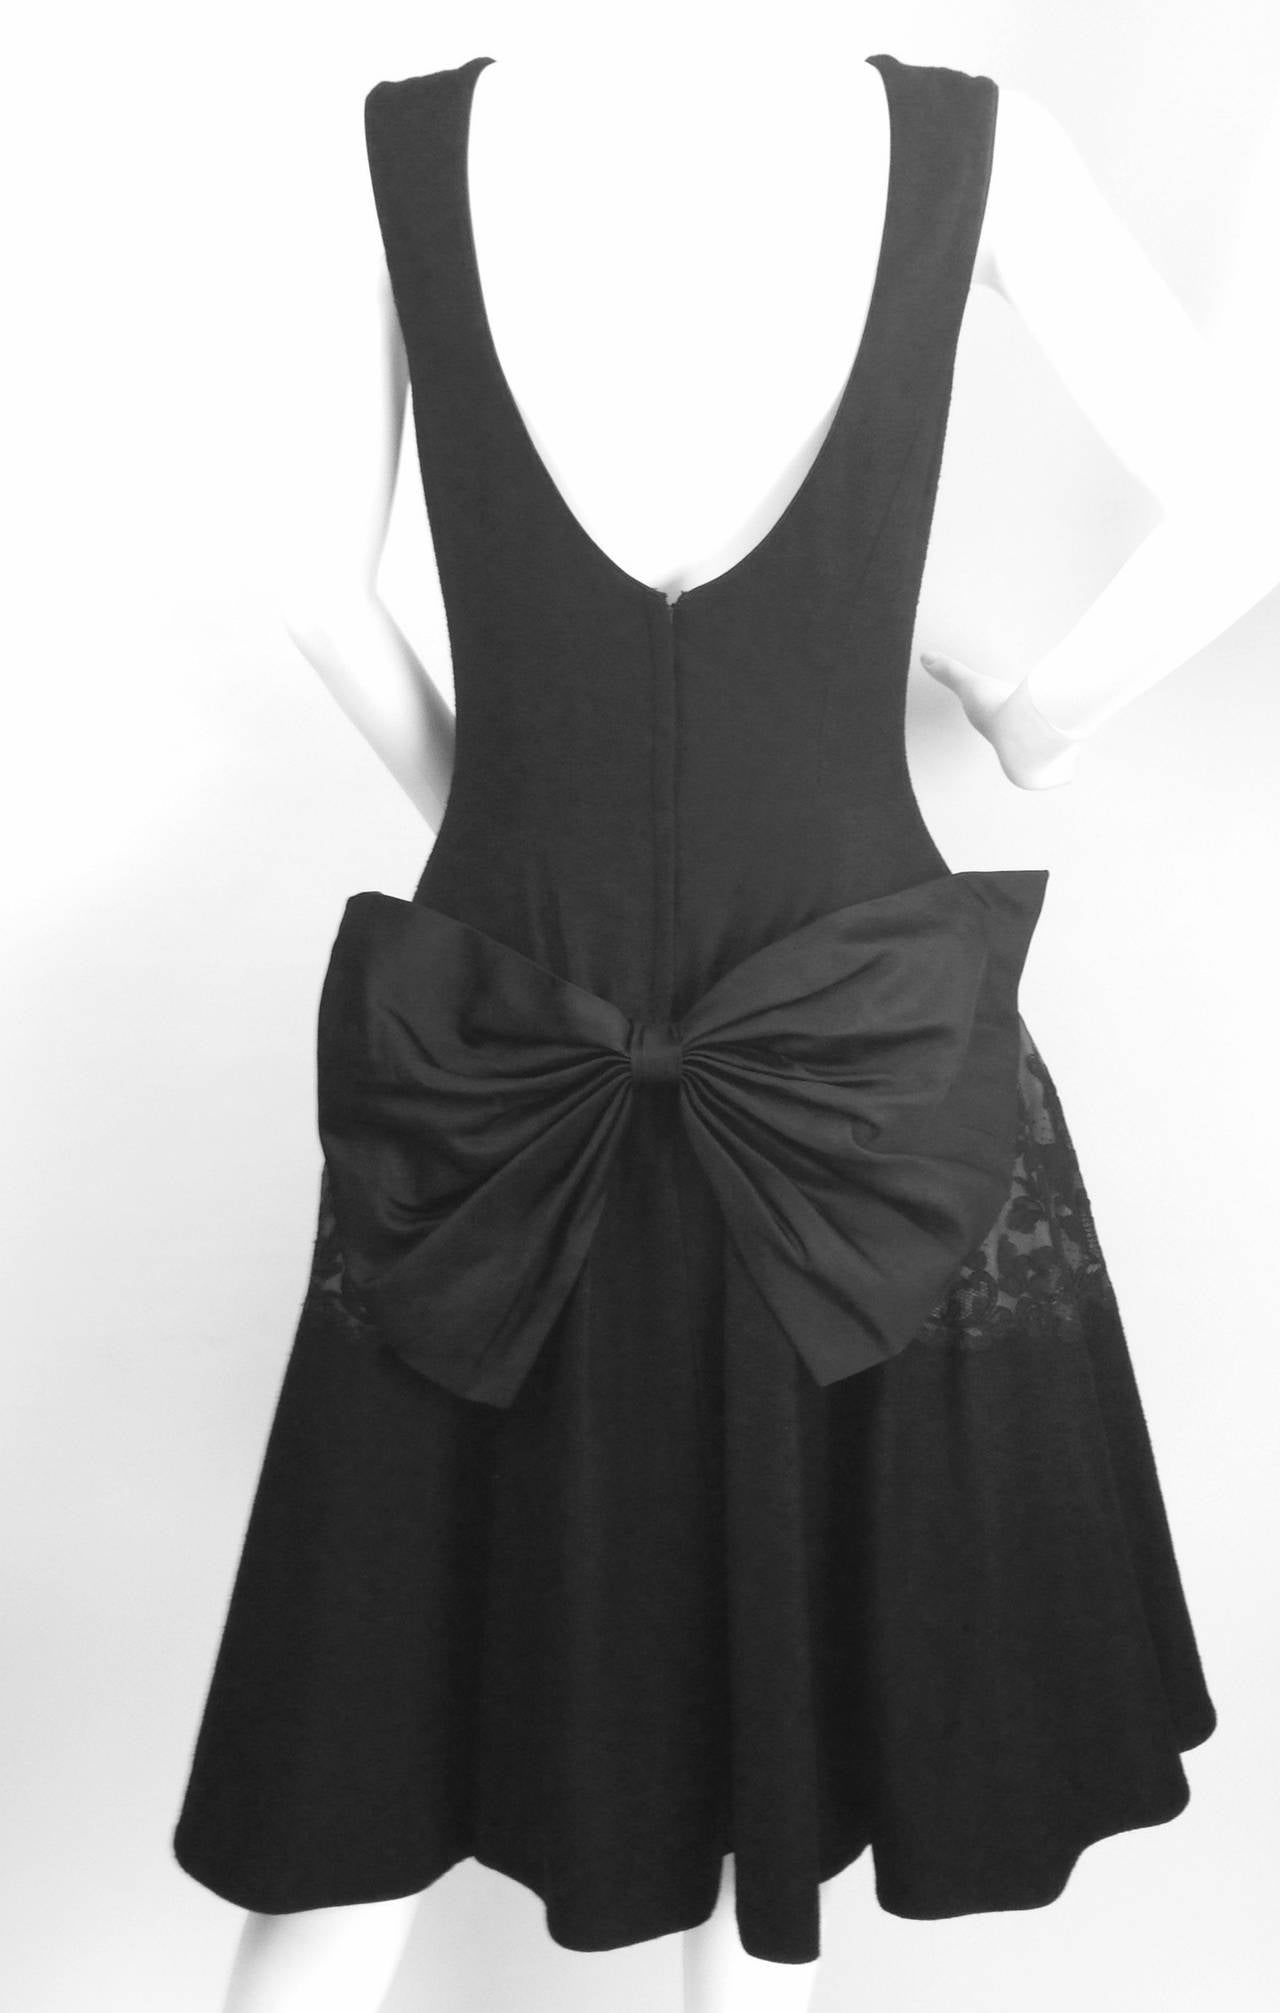 Stunning 1950's Mr. Blackwell Design can be worn as a formal evening dress or cocktail dress. Black wool with crepe lining under bodice and skirt underlined with interfacing for structure. Tulle petticoat. Features: scoop back, drop waist, Venetian